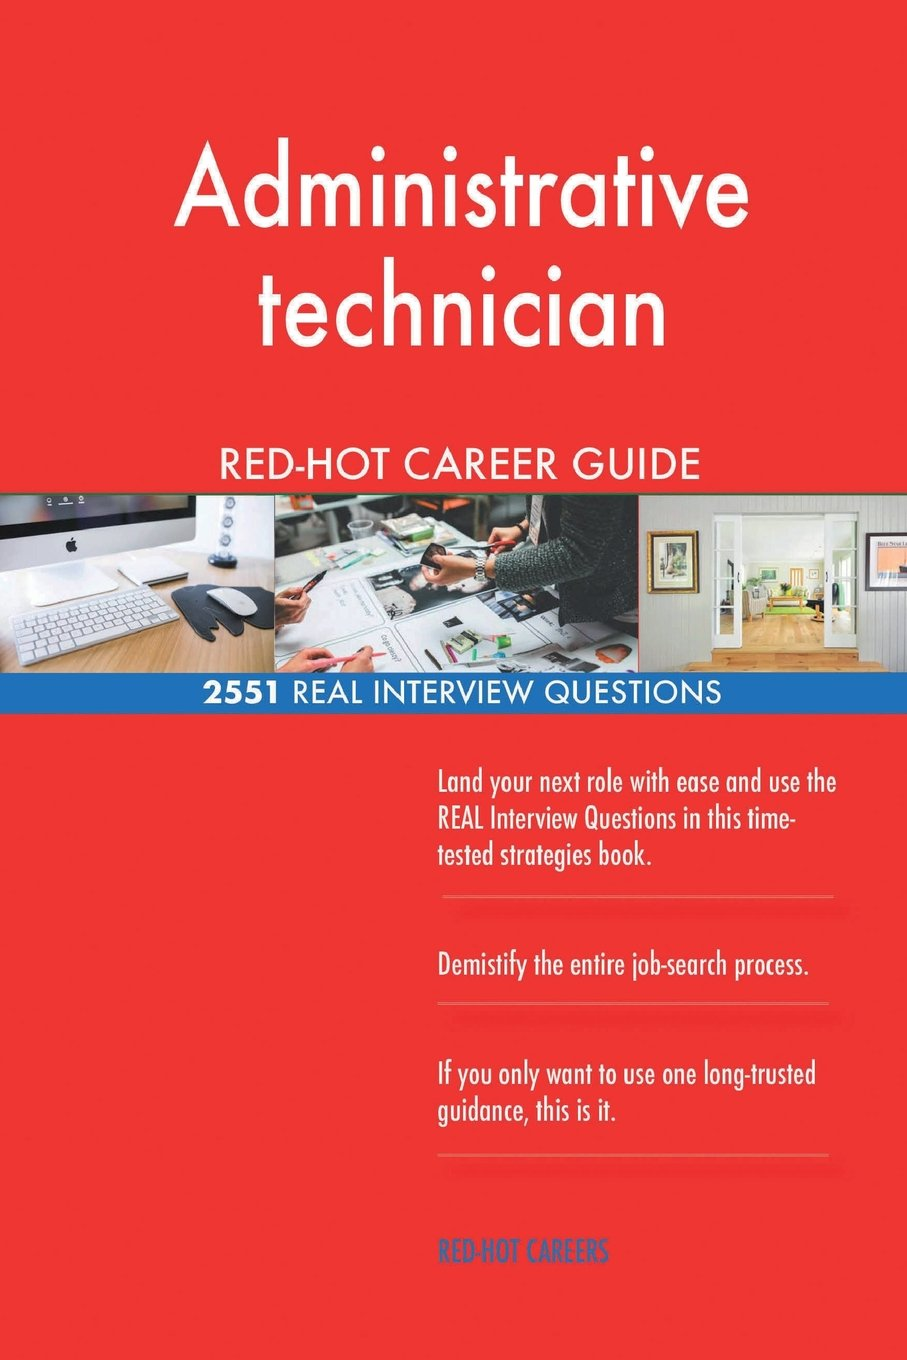 Administrative technician RED-HOT Career Guide; 2551 REAL Interview Questions ebook